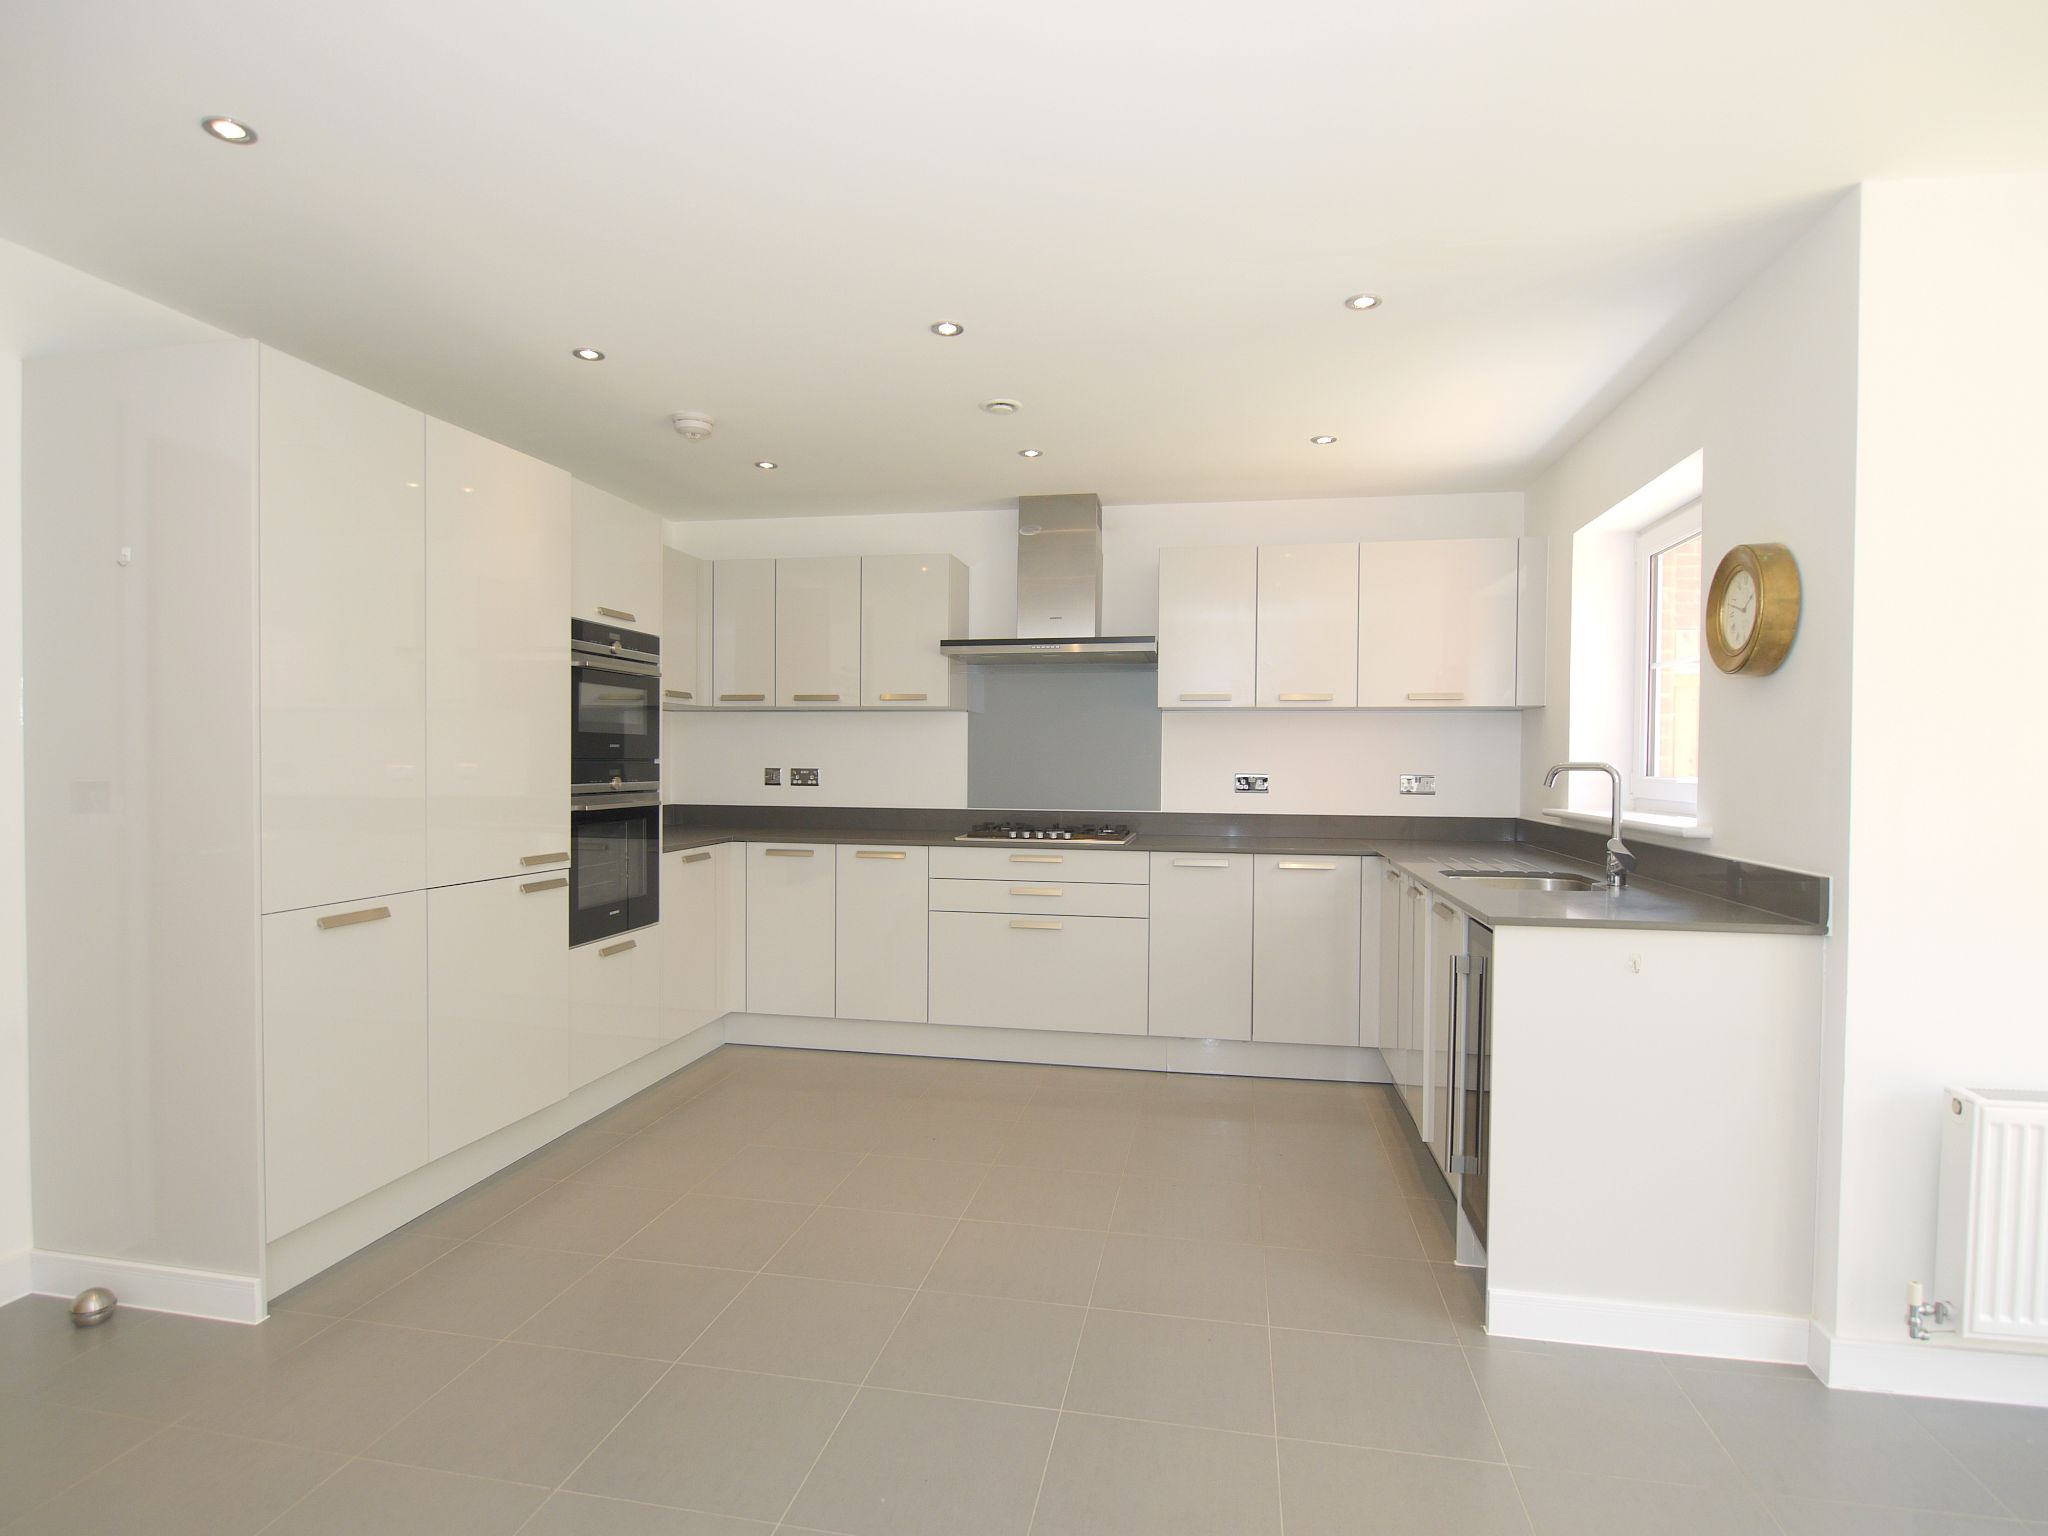 4 bedroom mid terraced house For Sale in Sevenoaks - Photograph 3